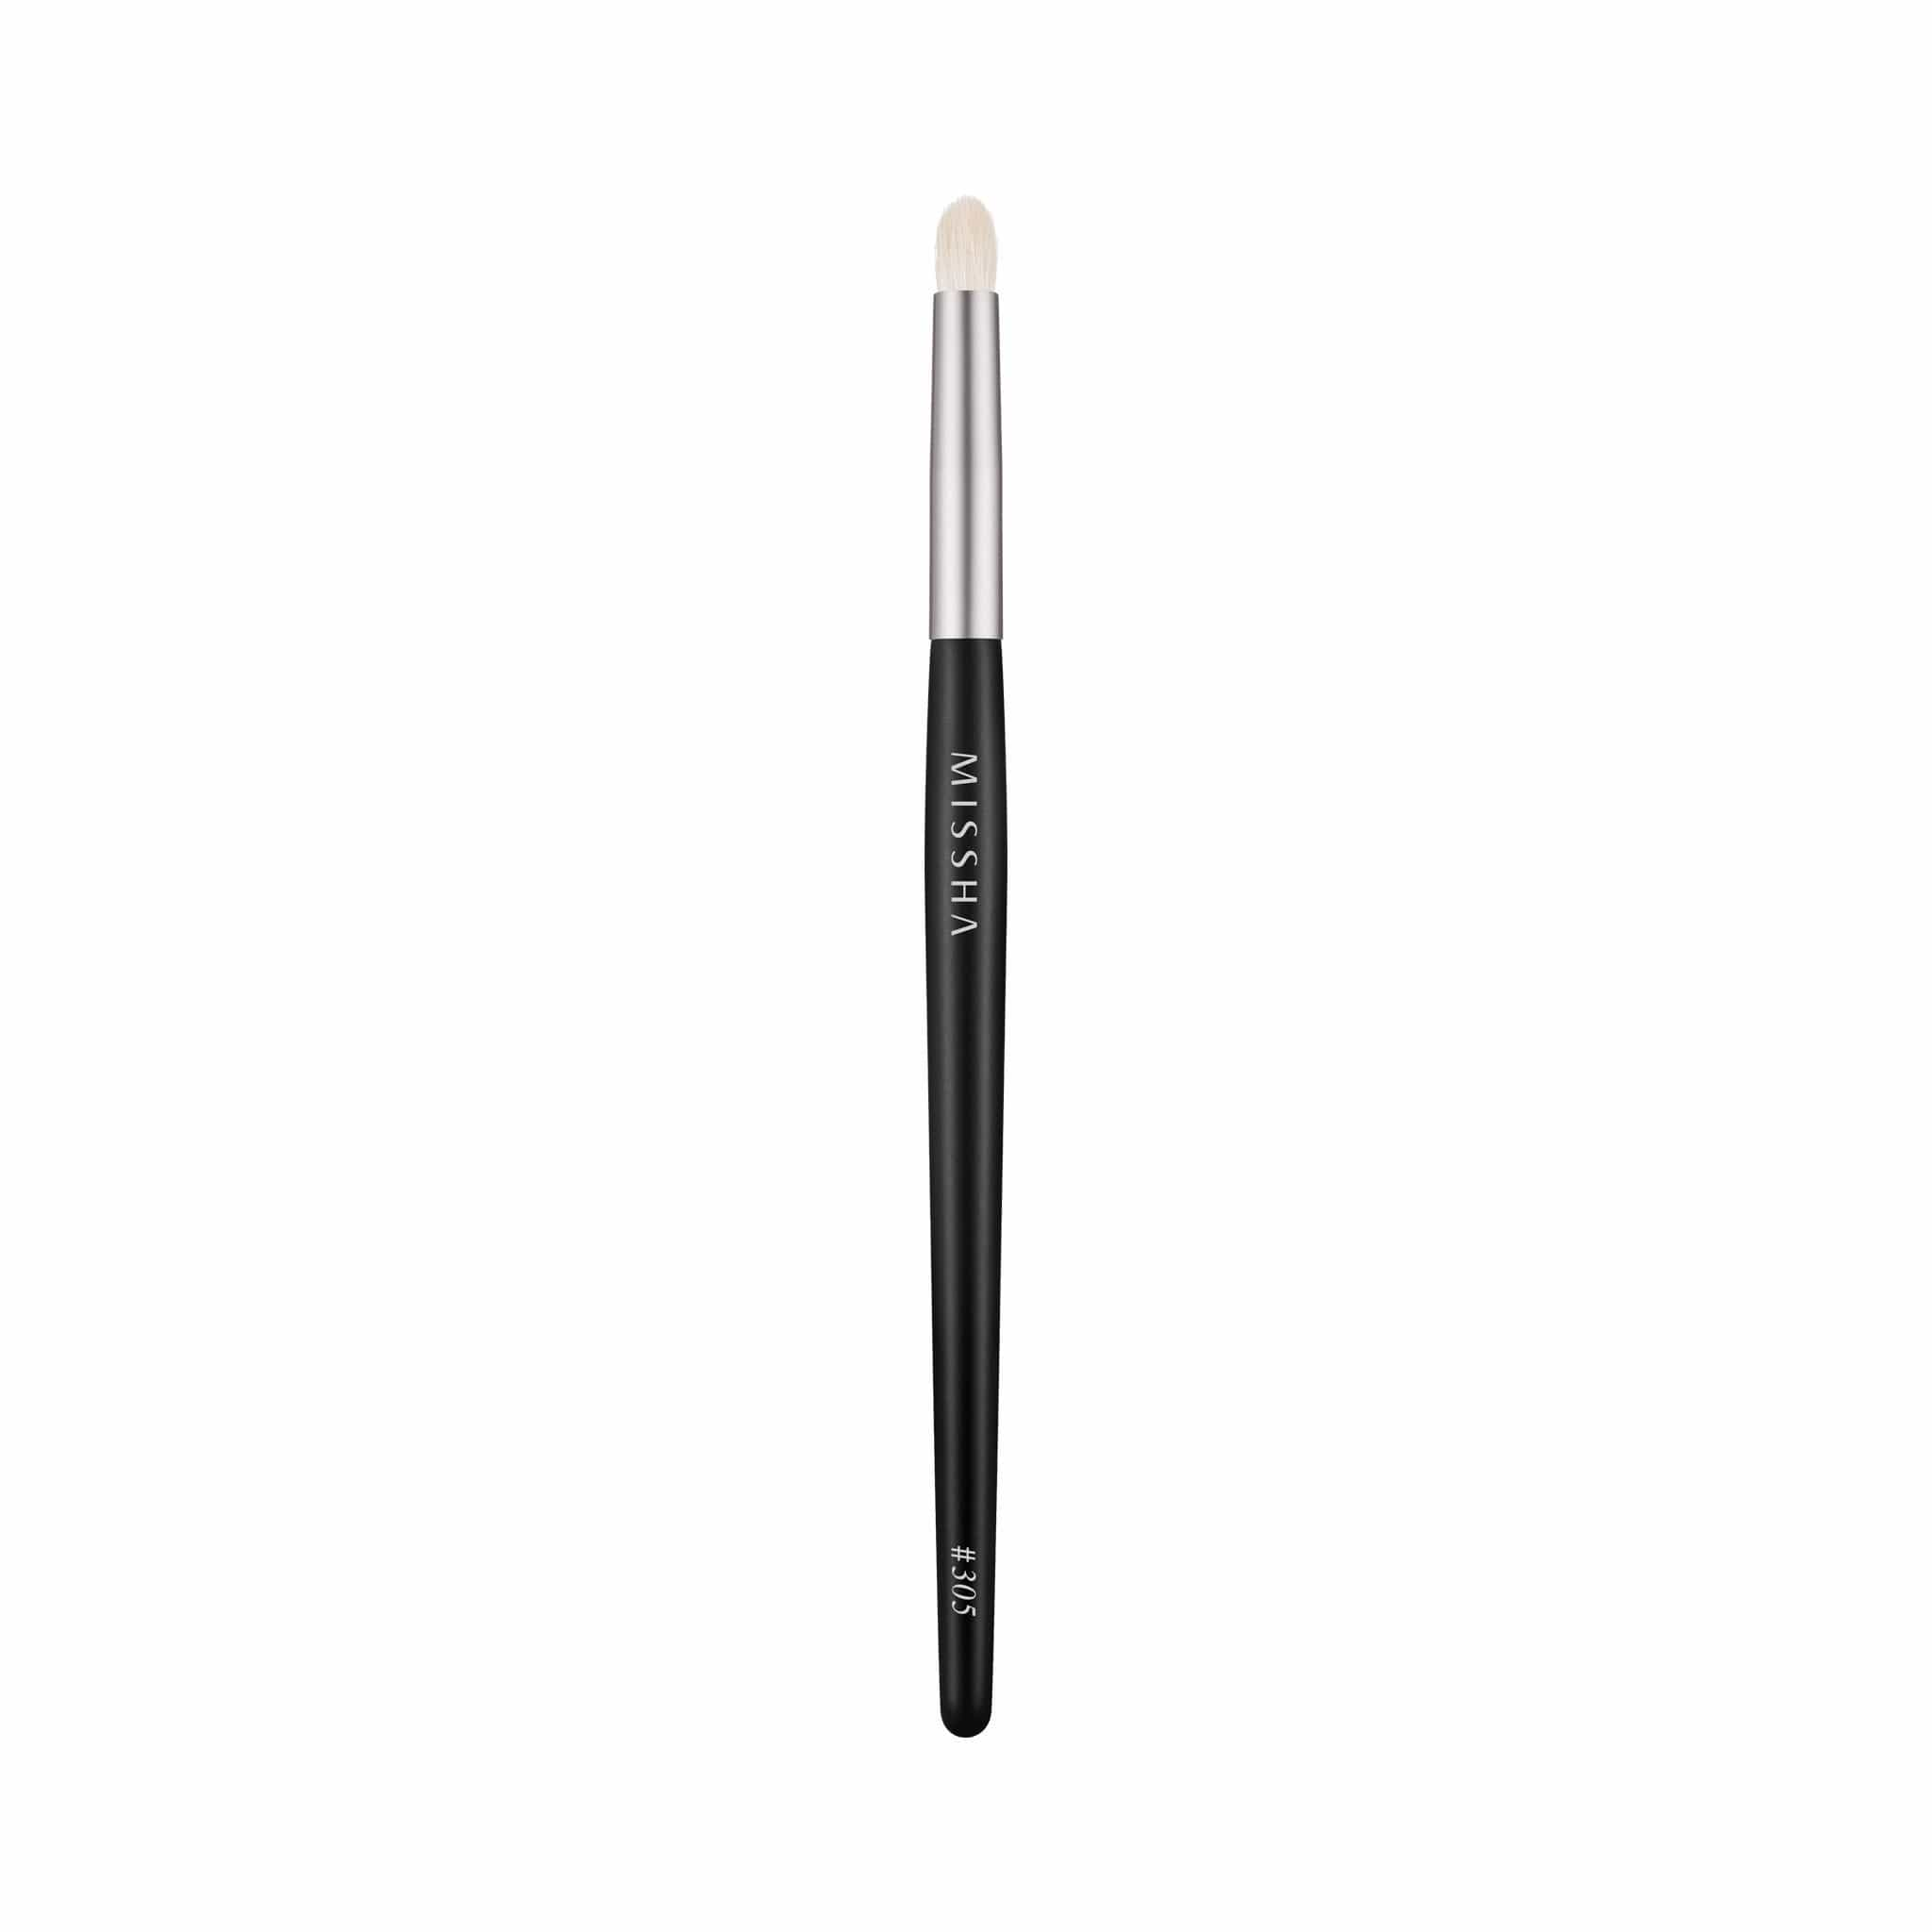 ARTISTOOL SHADOW BRUSH #305 - MISSHA